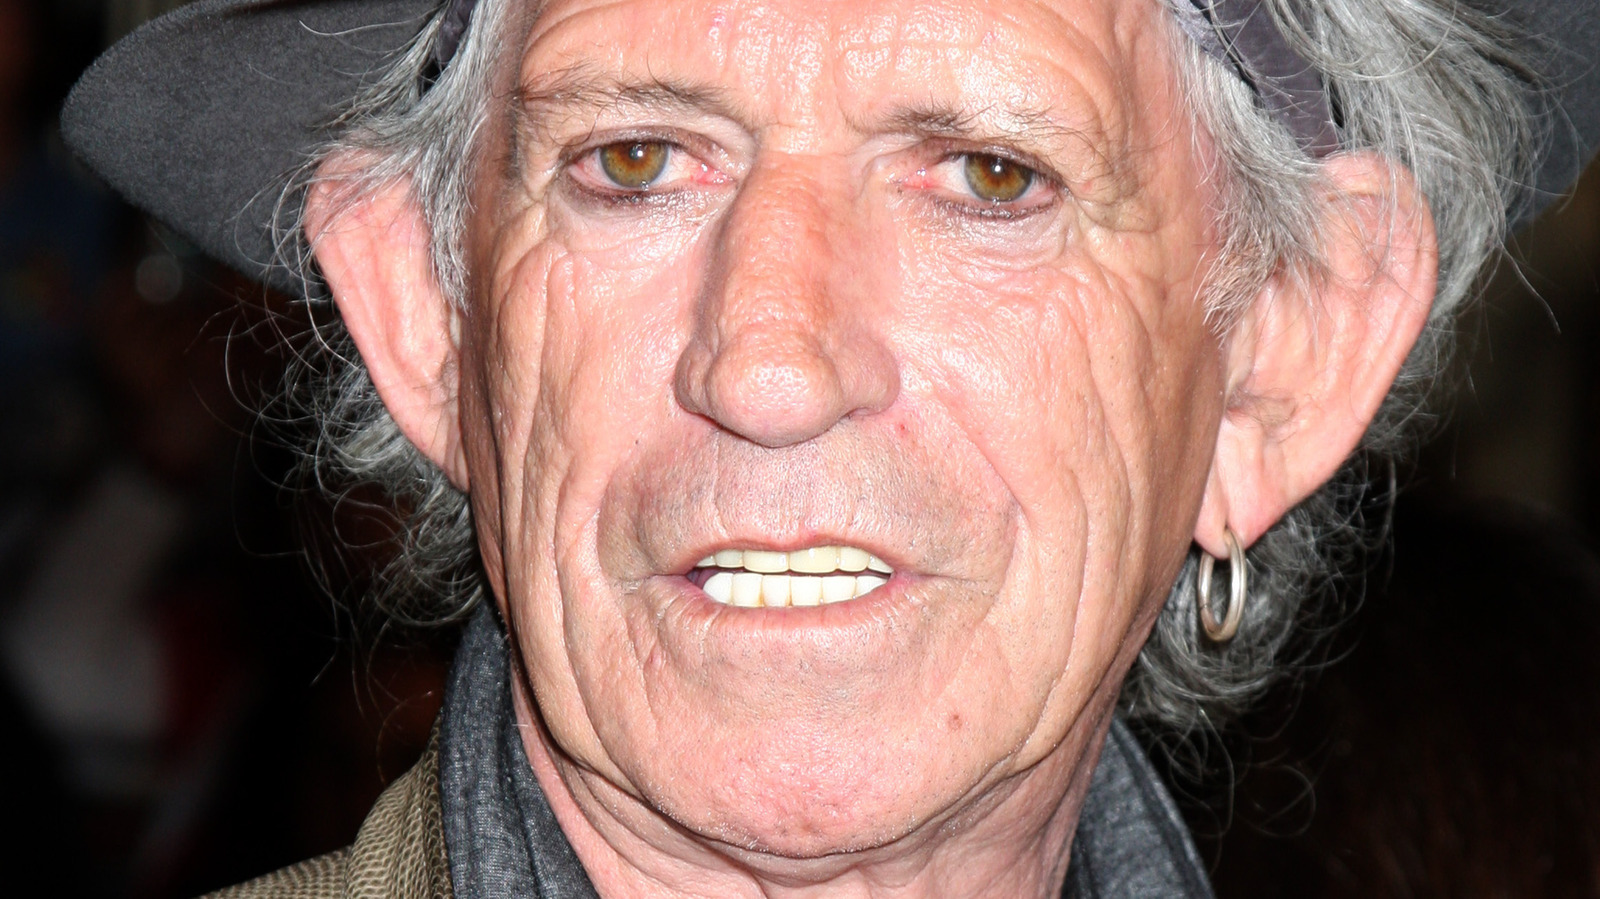 How Many Grandchildren Does Keith Richards Have?